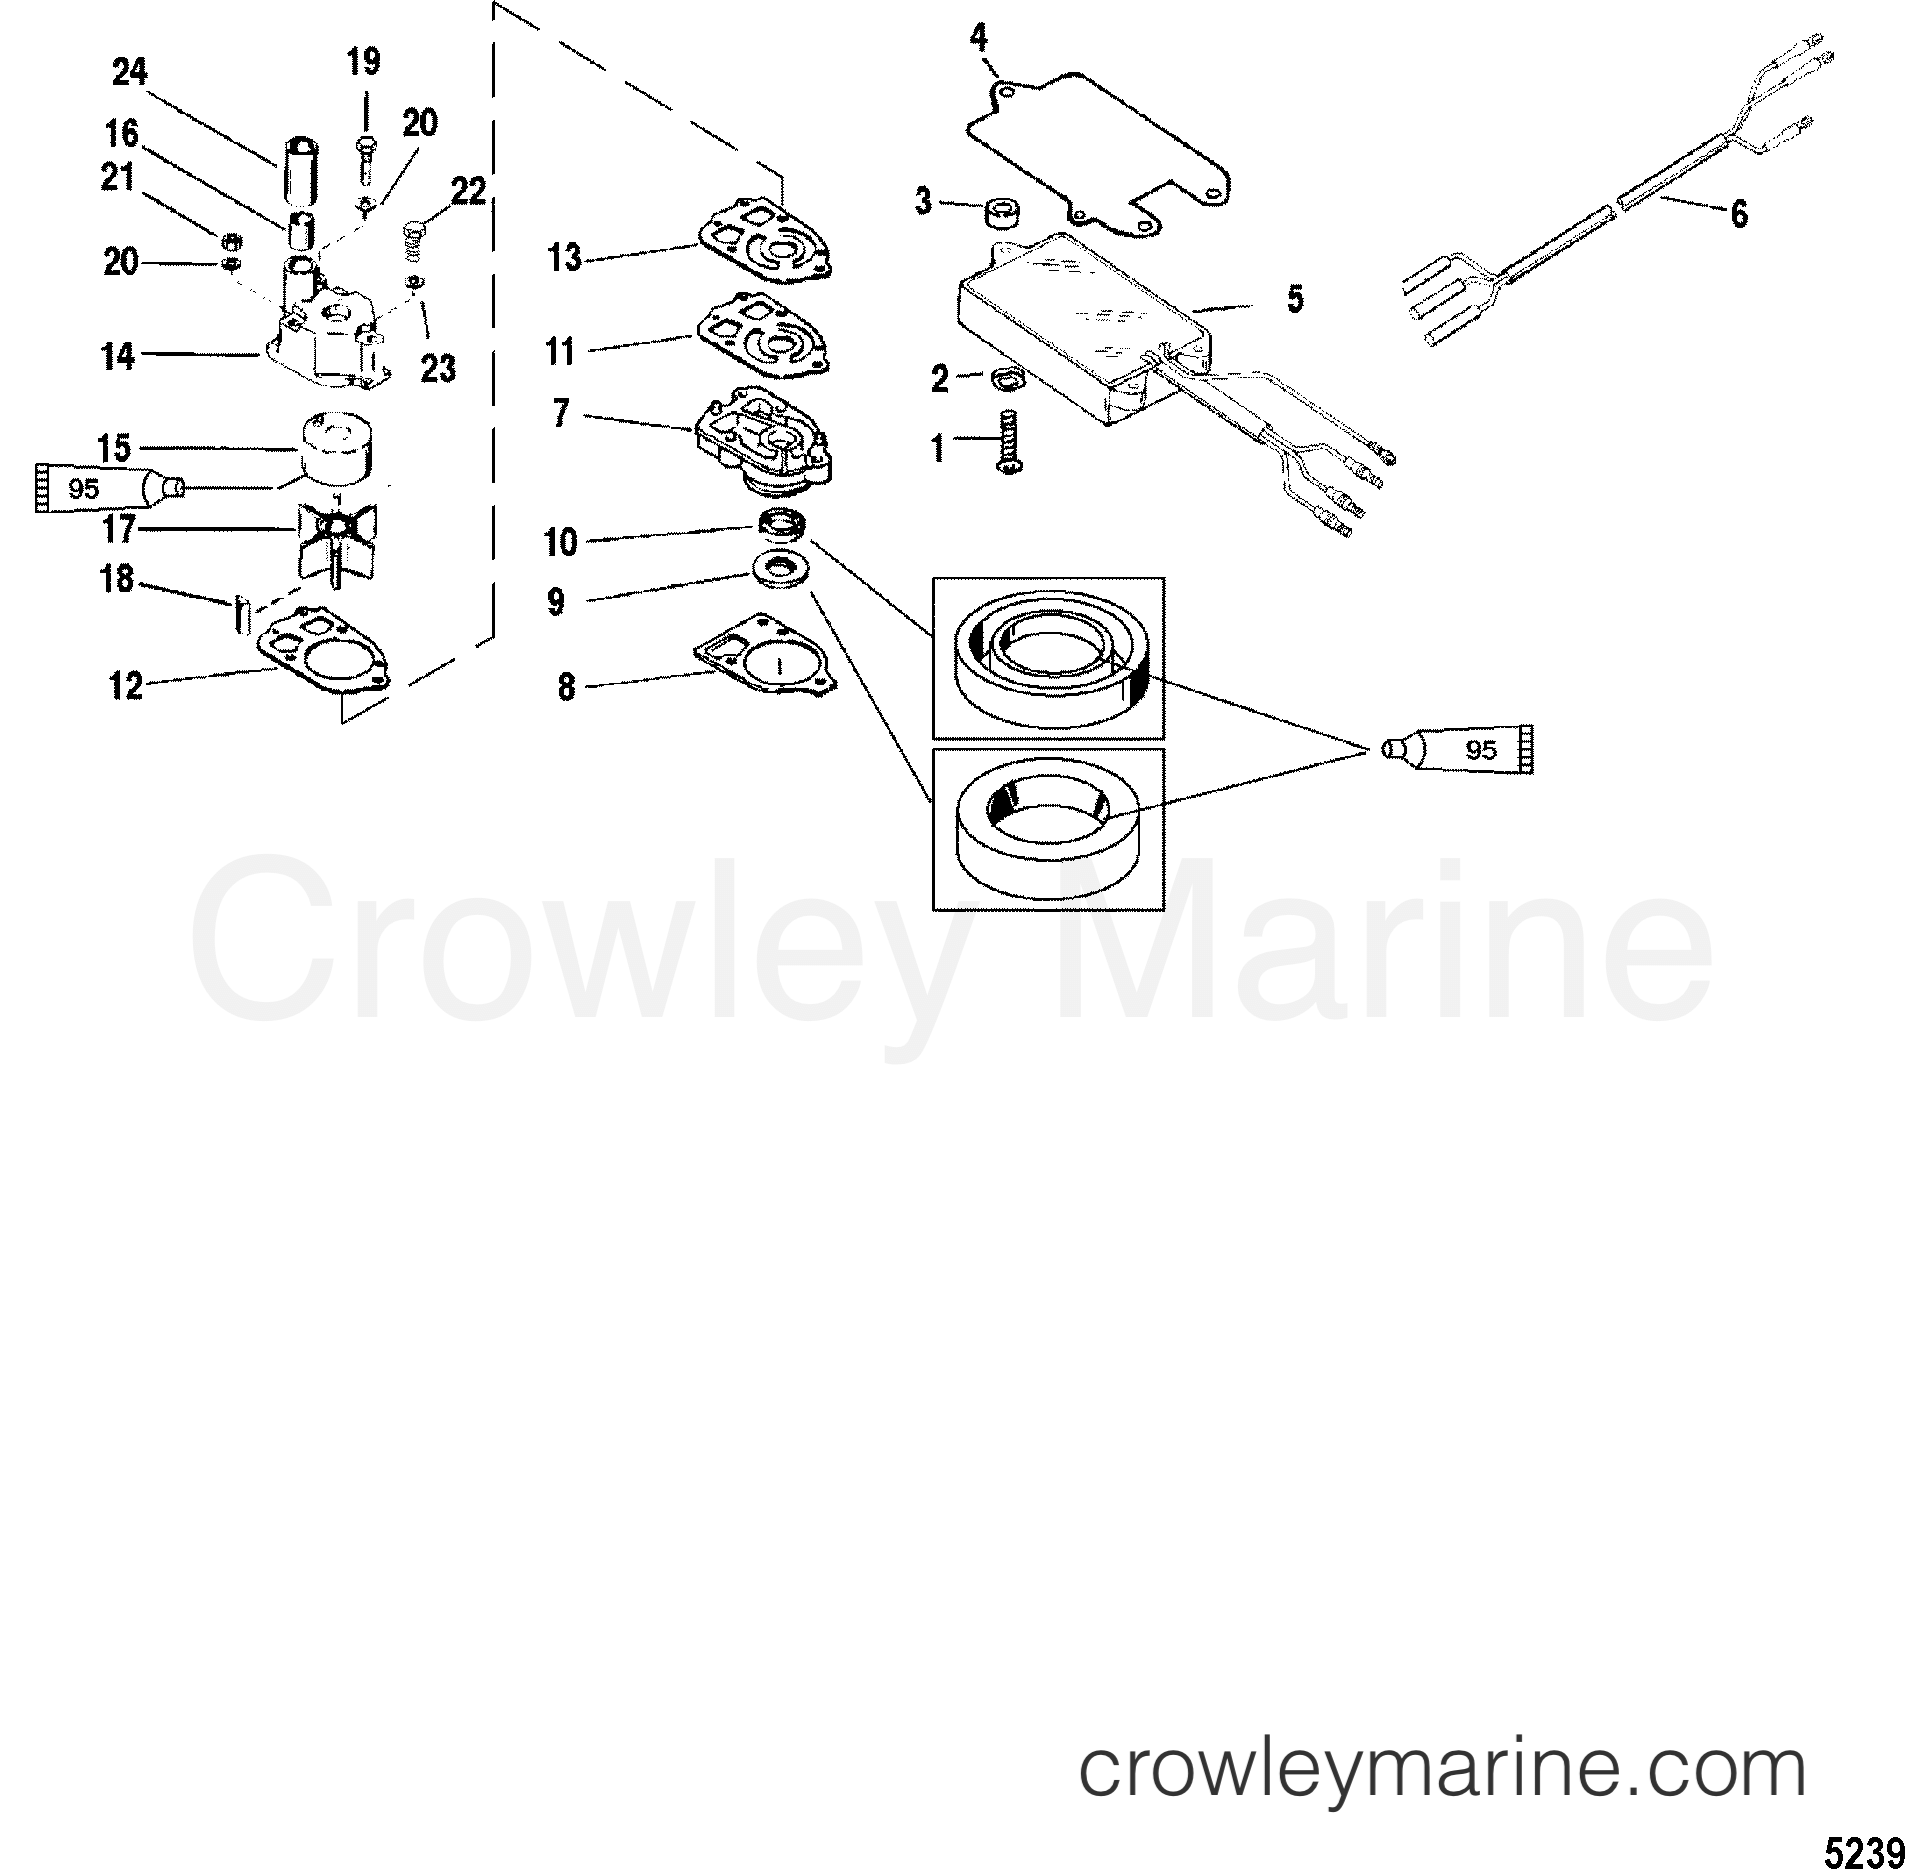 Bayliner Trophy Wiring Diagram